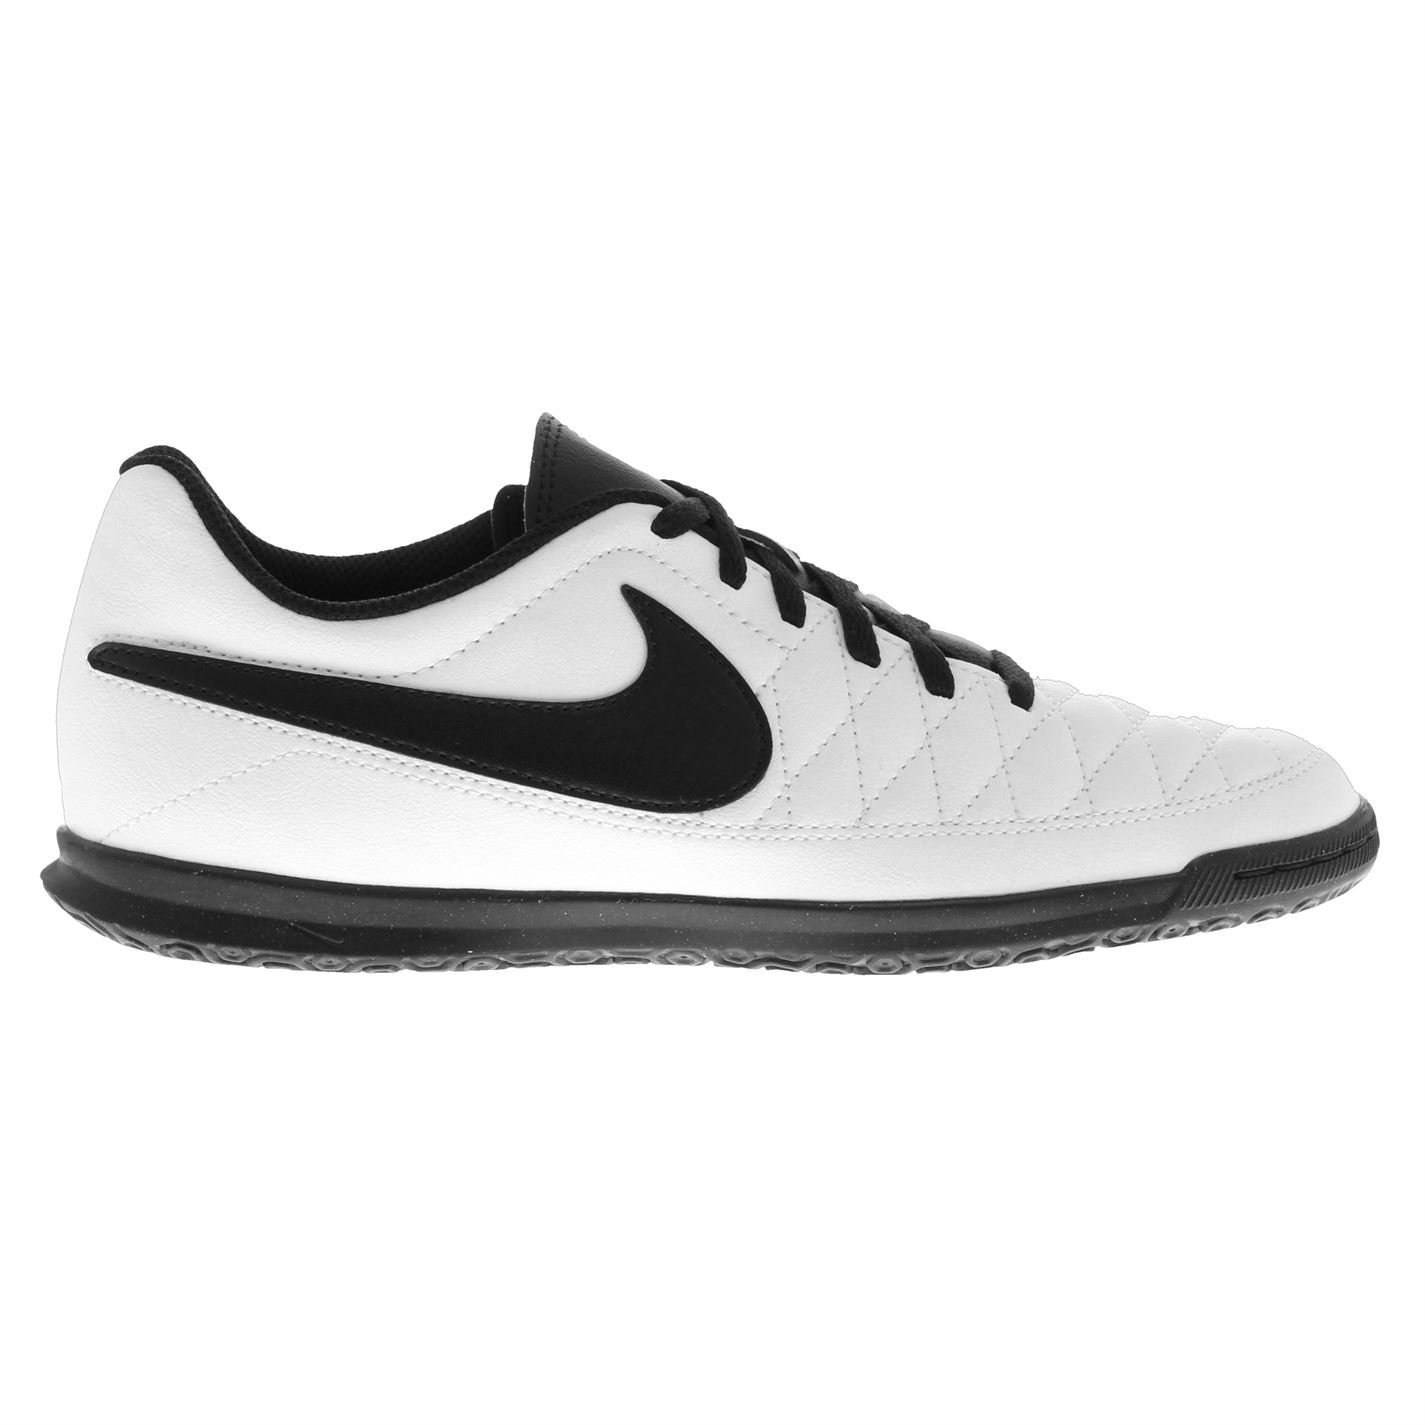 Nike-majestry-Indoor-Football-Baskets-Pour-Homme-Football-Futsal-Chaussures-Baskets-Bottes miniature 29